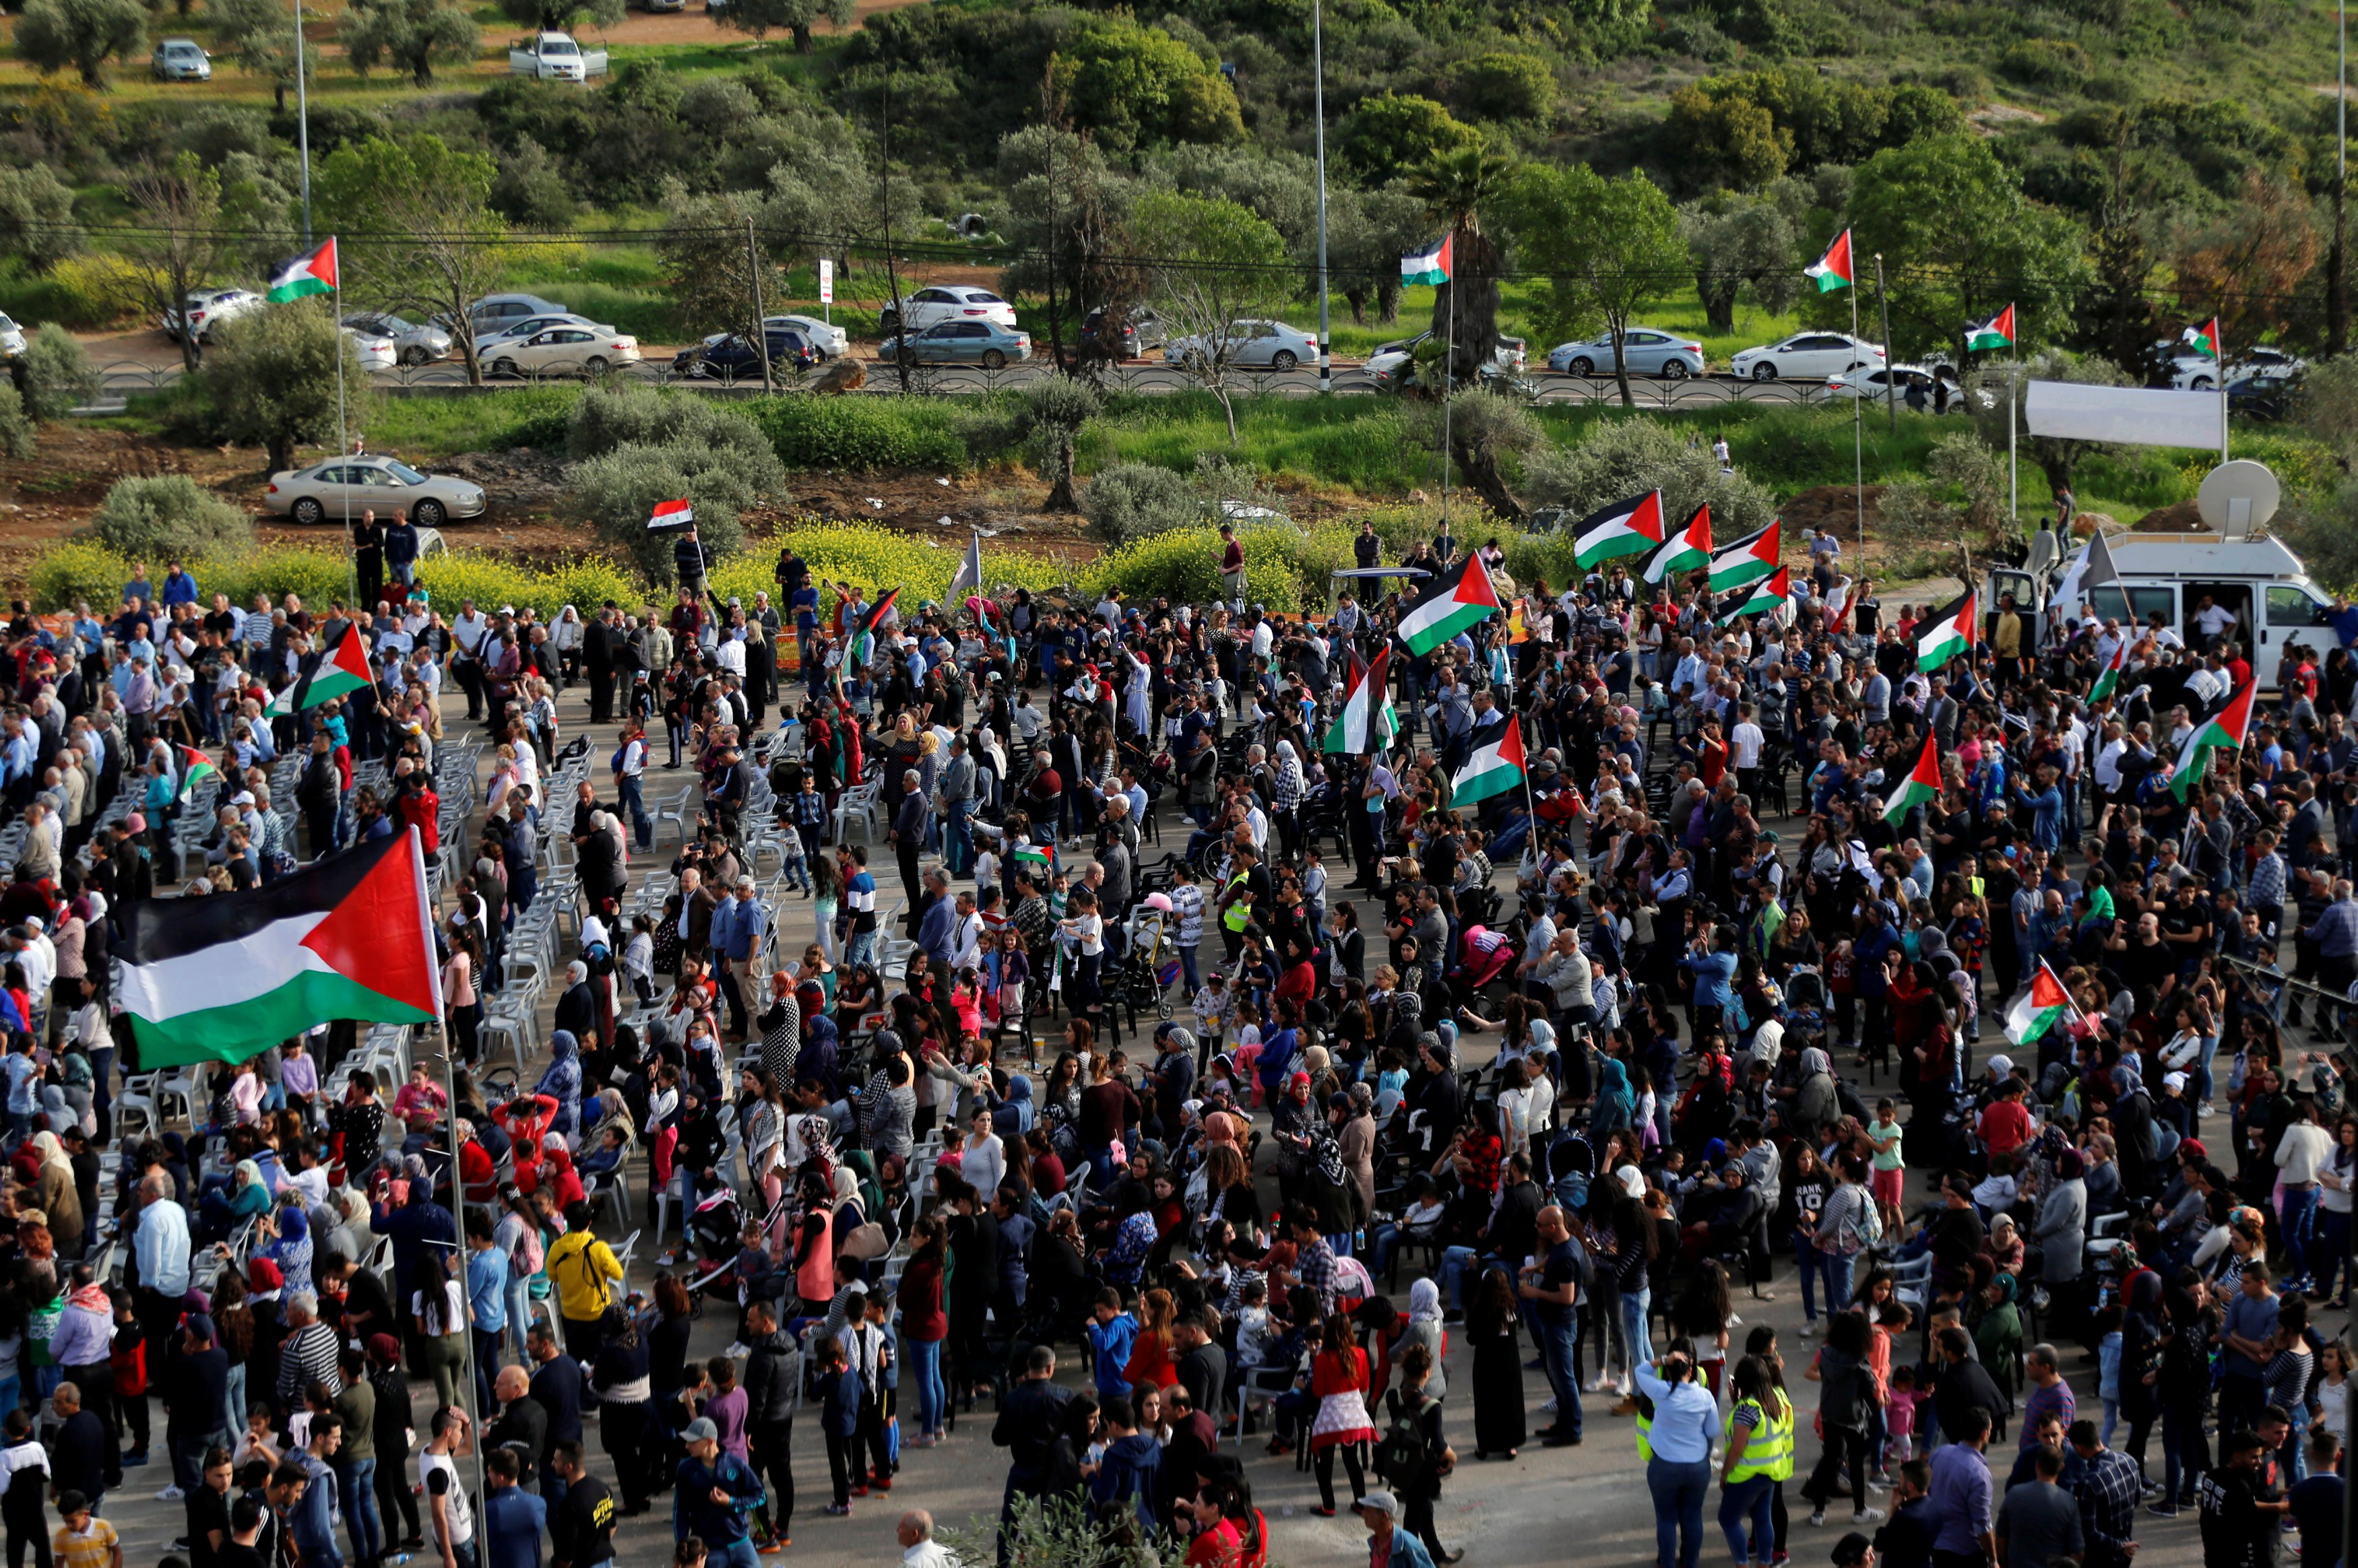 15 killed, 1,400 injured by Israeli troops during Gaza border march